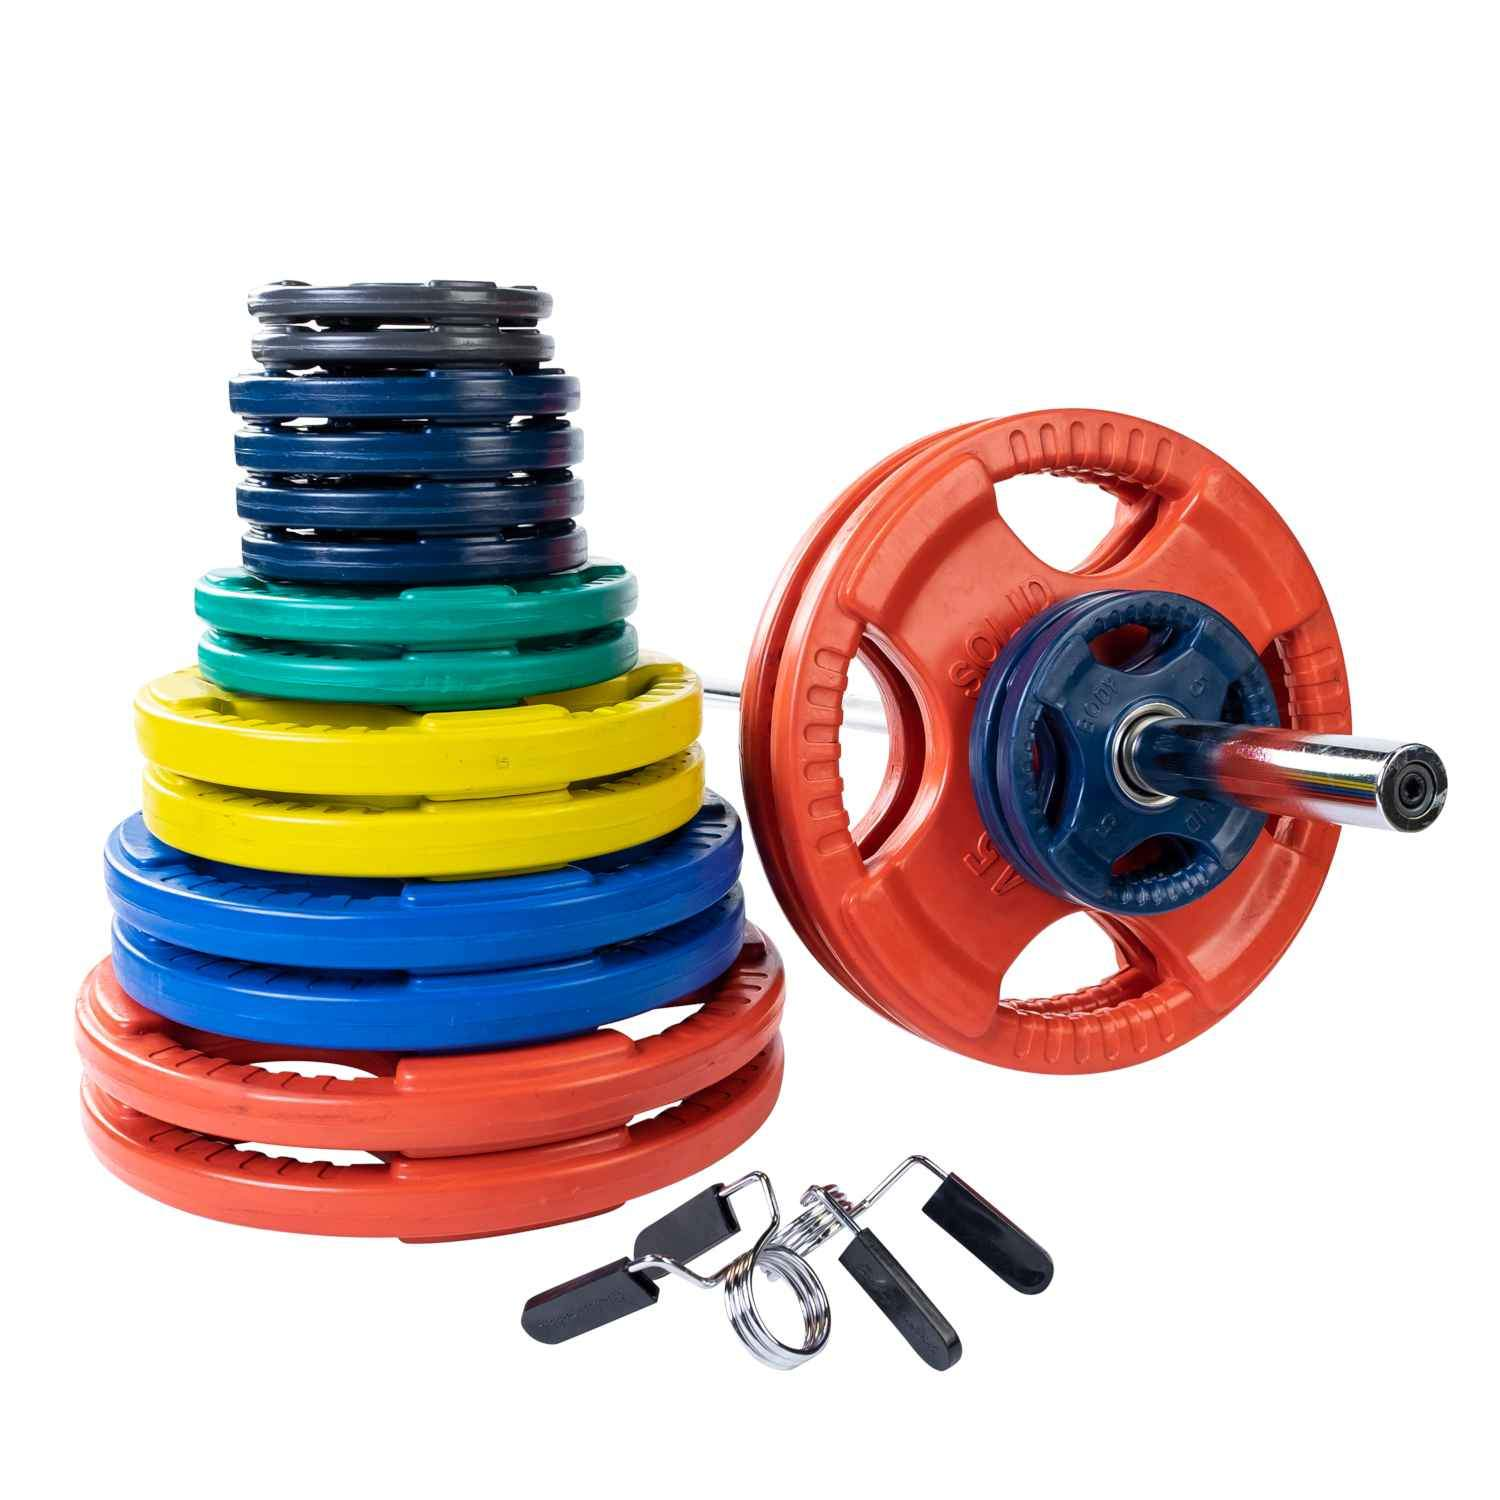 Body-Solid Colored Rubber Olympic Grip Plate Set With Chrome Bar and Collar plate Body-Solid Iron 500 lb